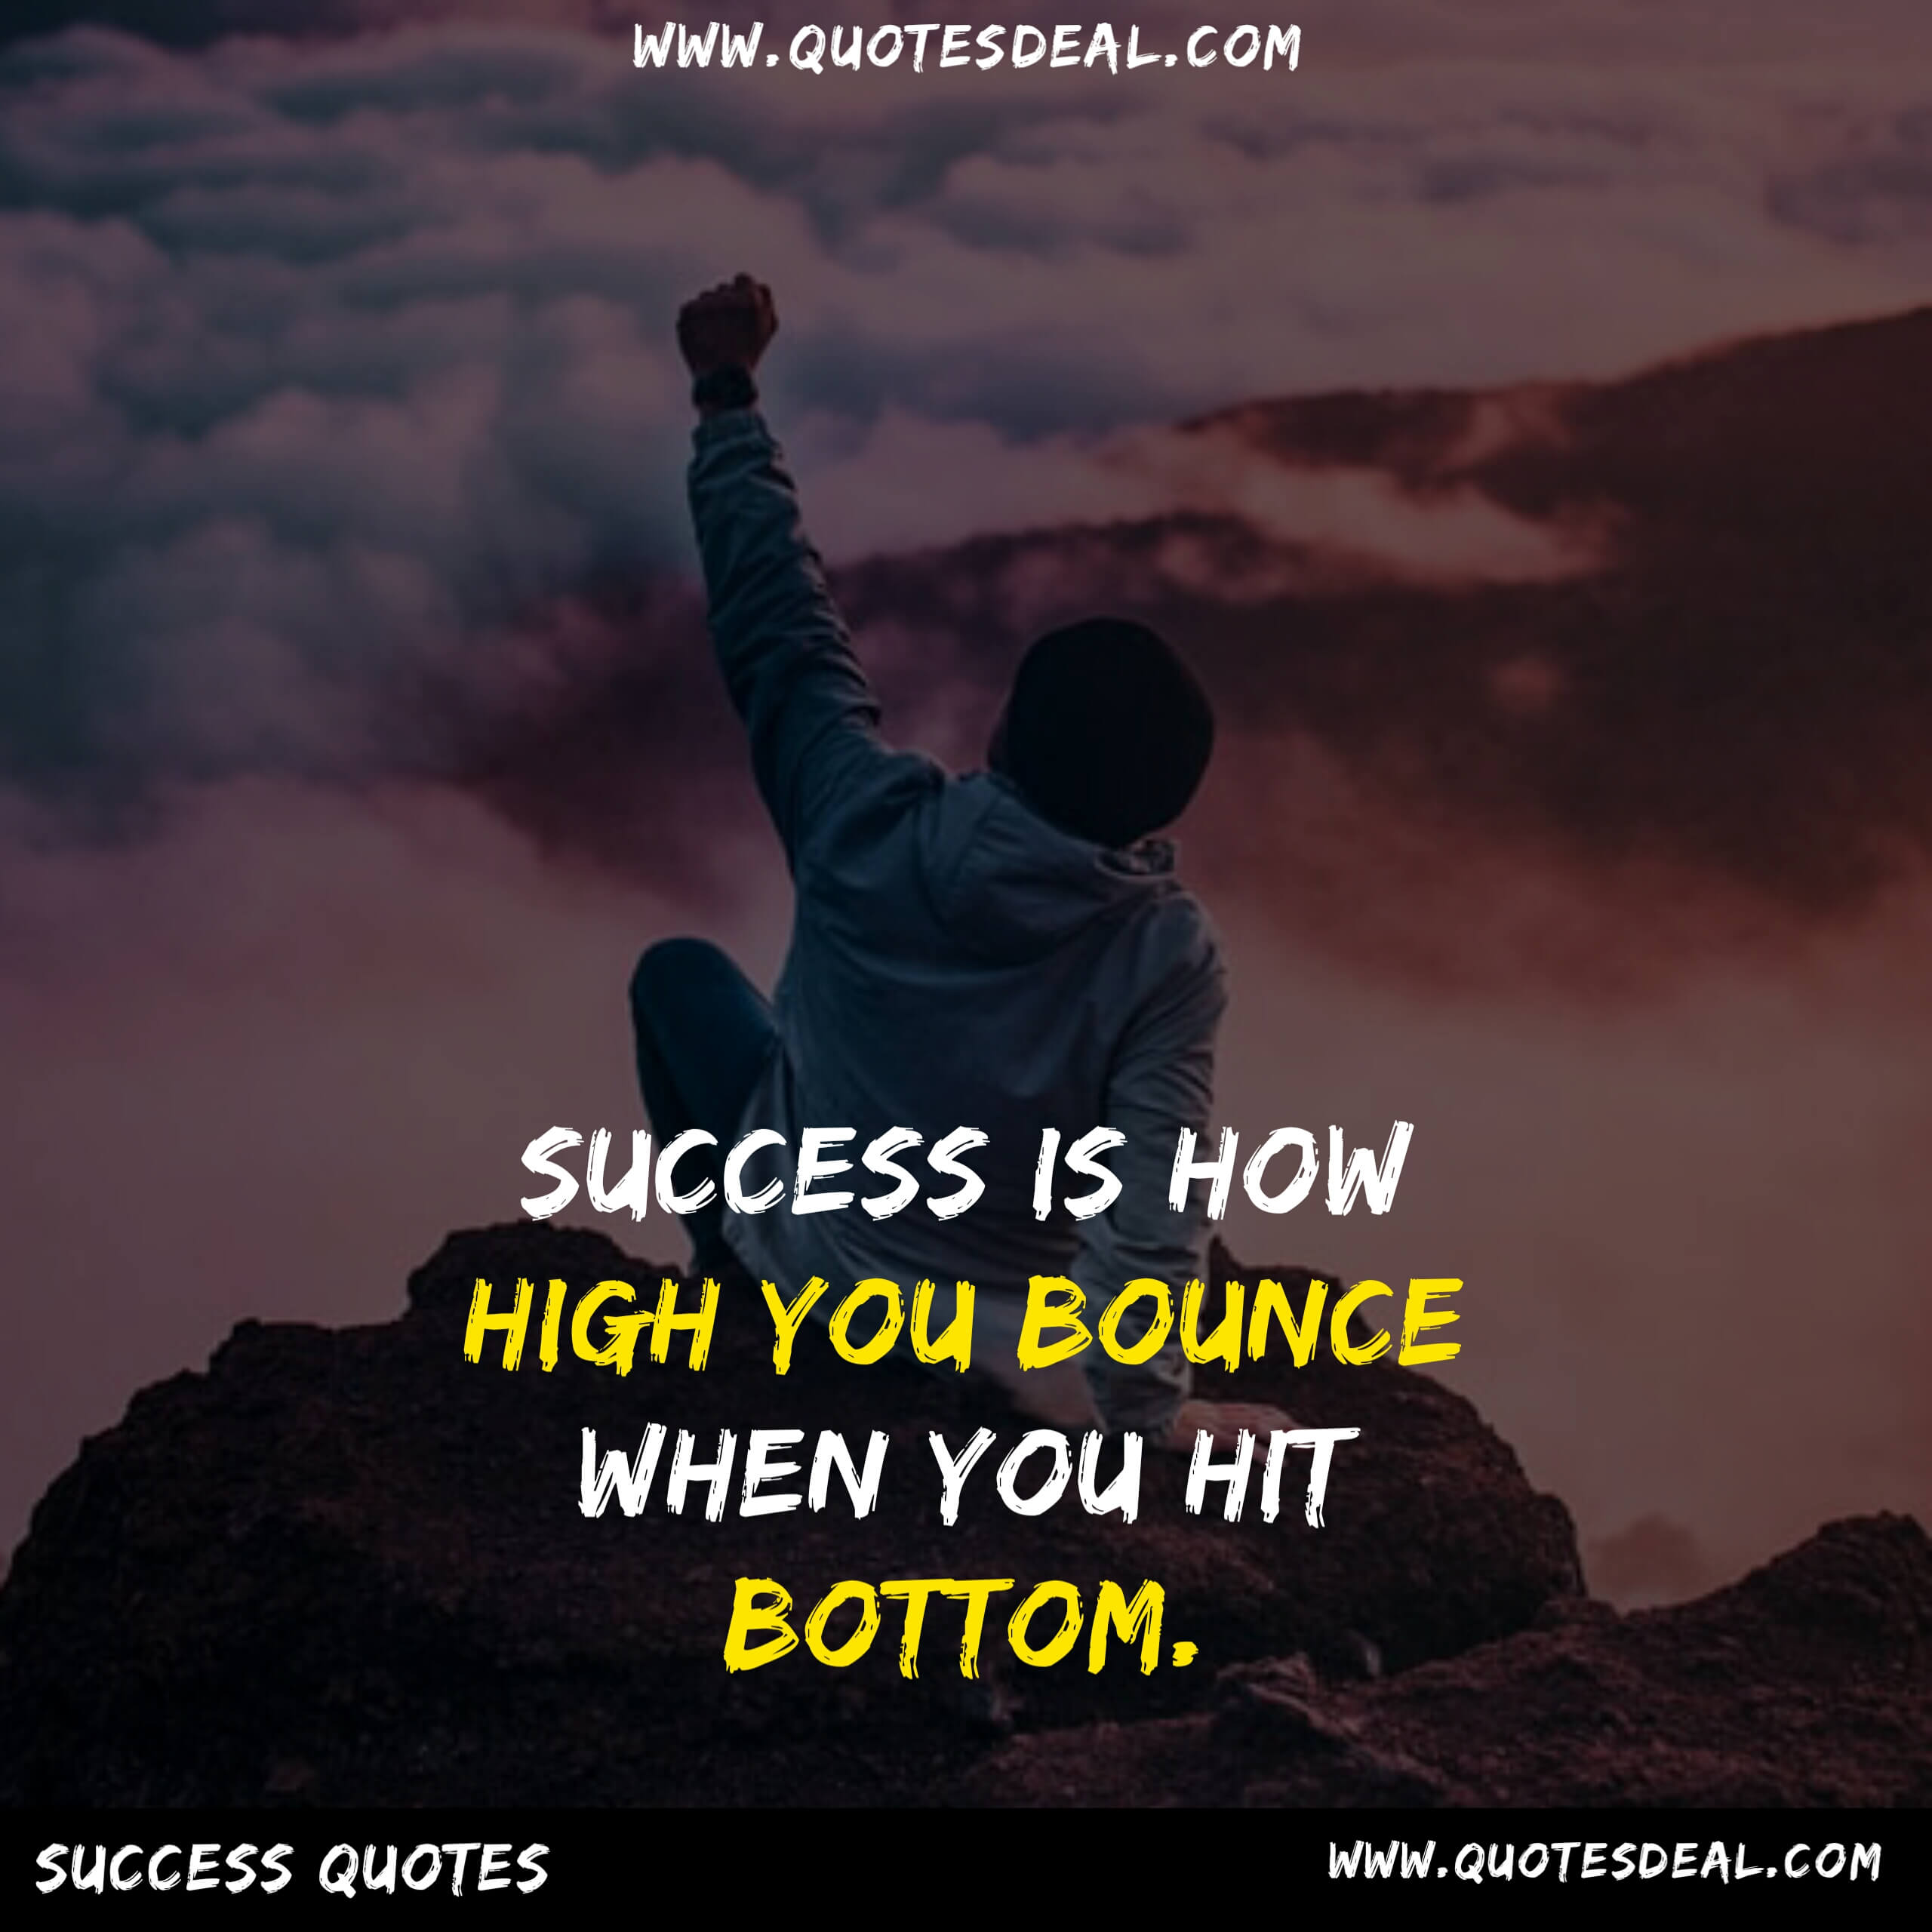 Success is how high